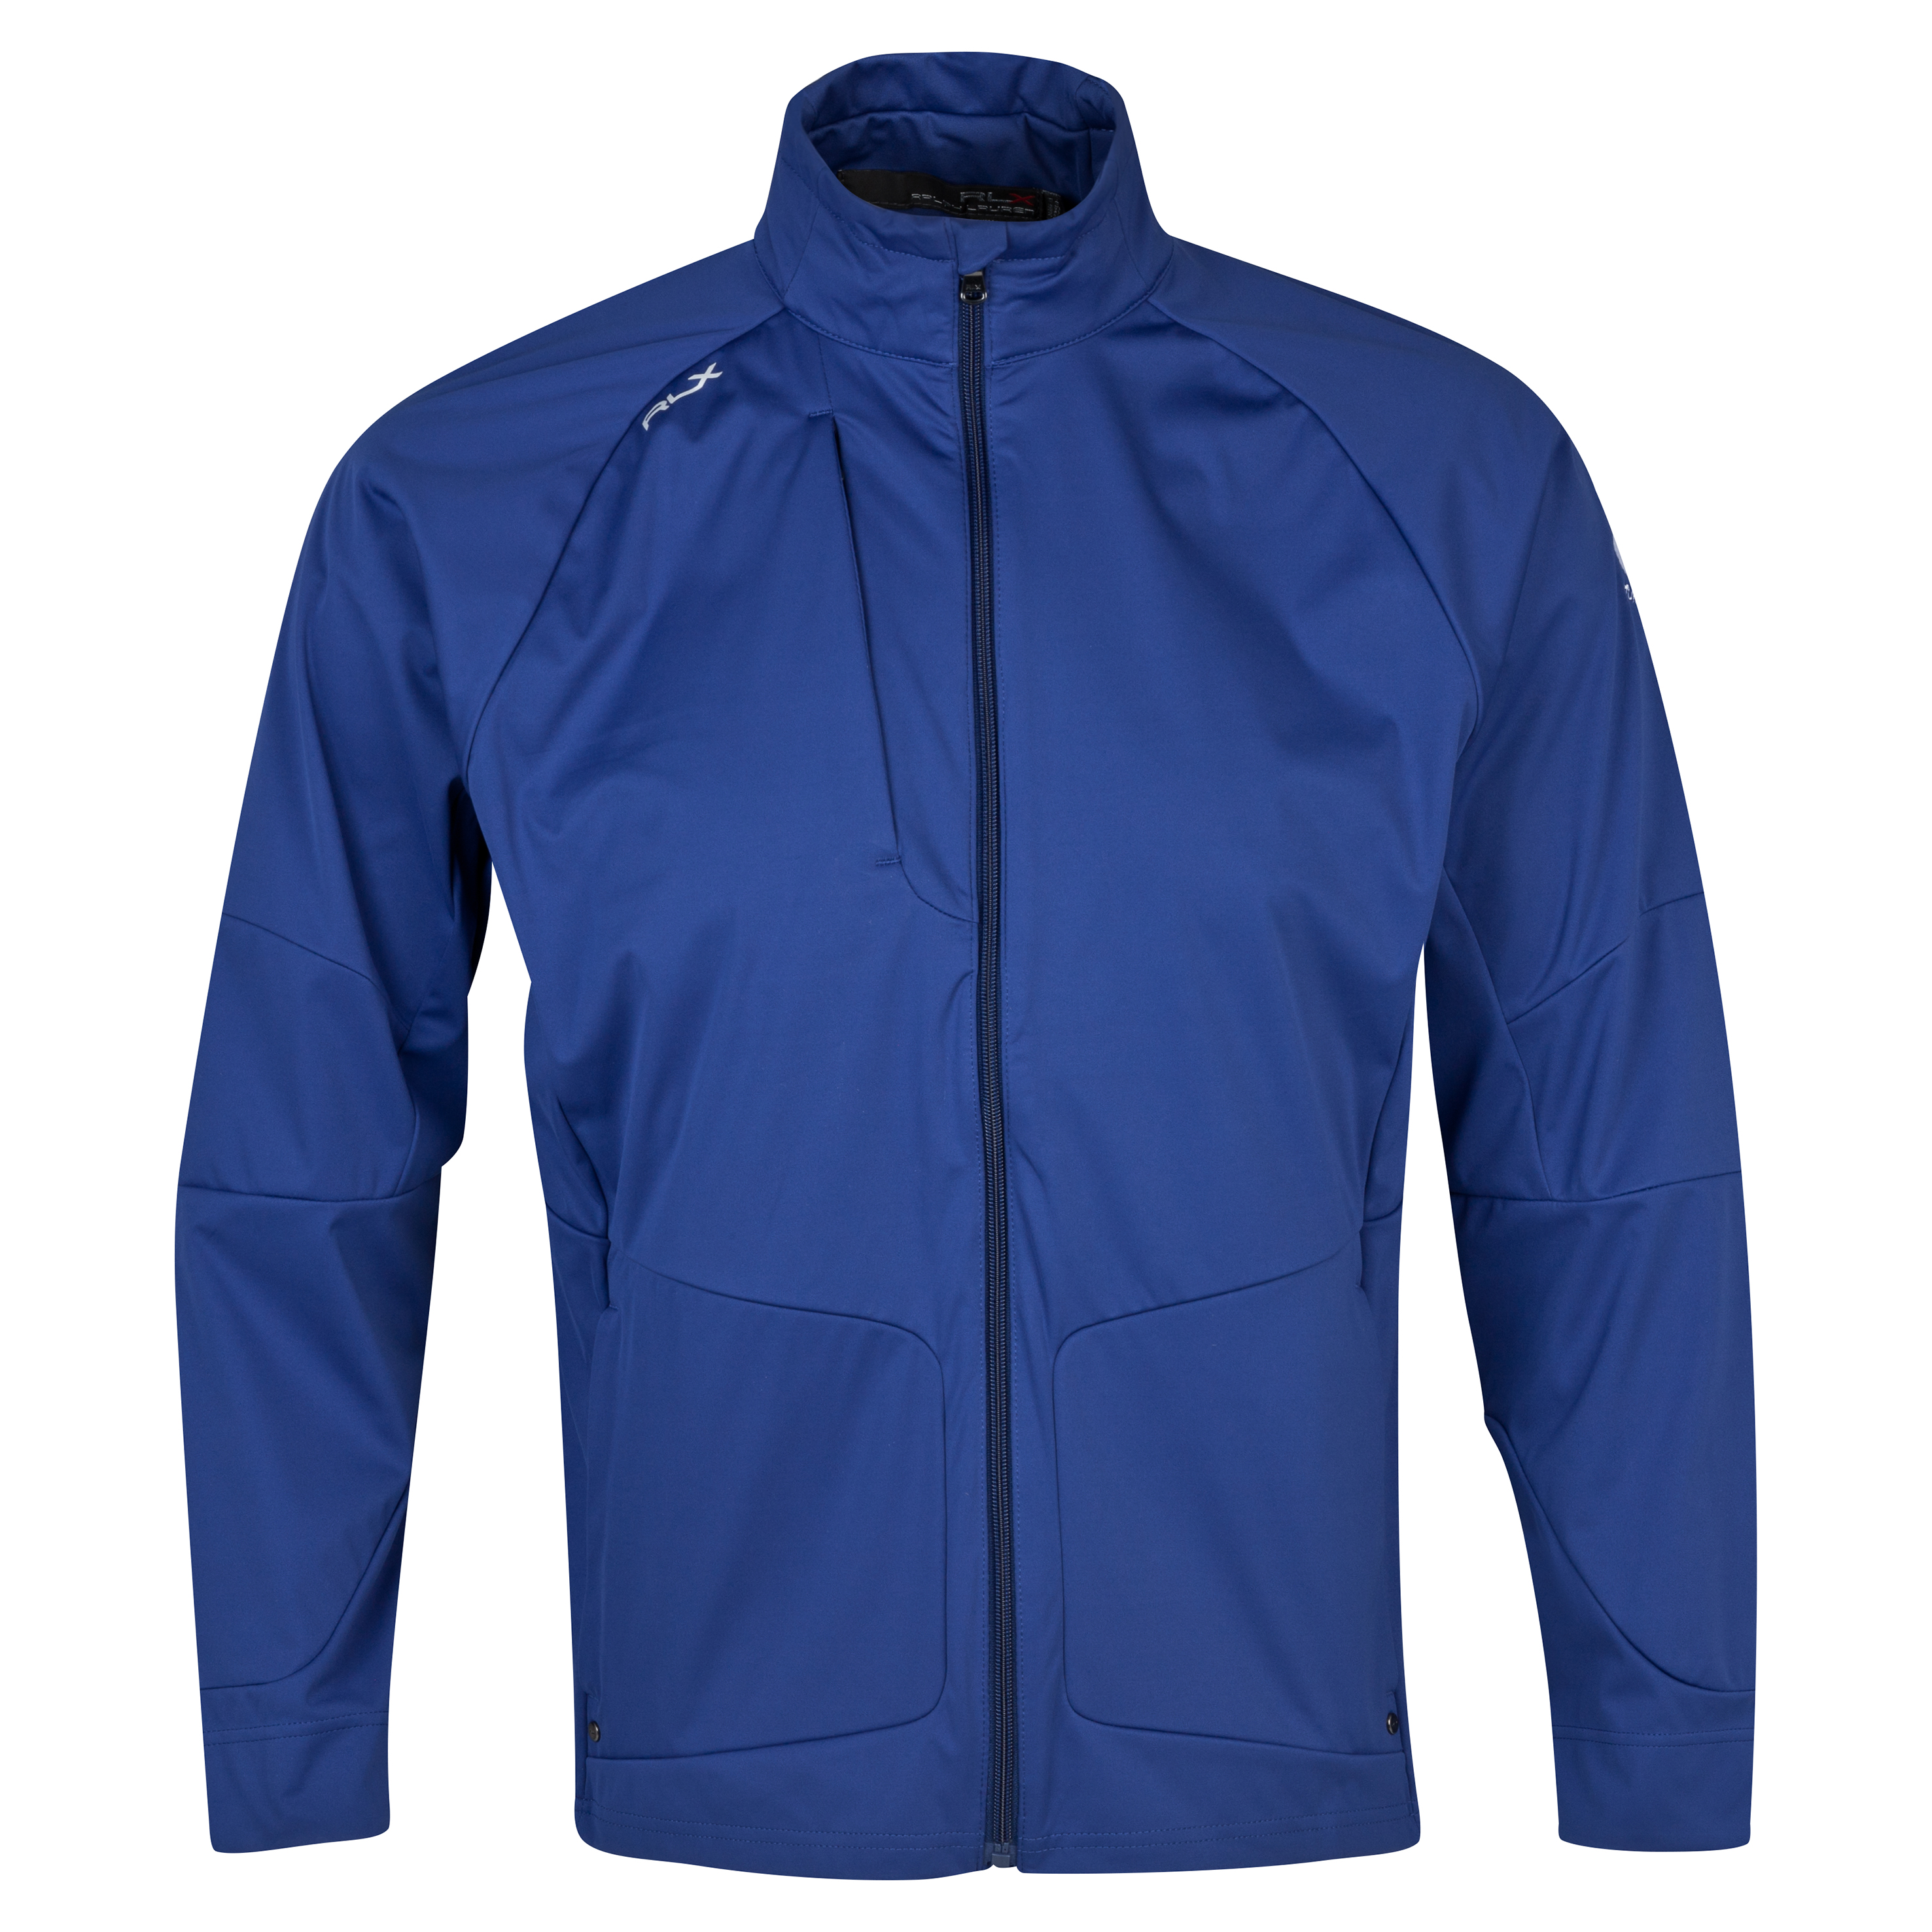 The Open Championship 2013 Muirfield Ralph Lauren RLX Full Zip Drive Jacket Dk Blue